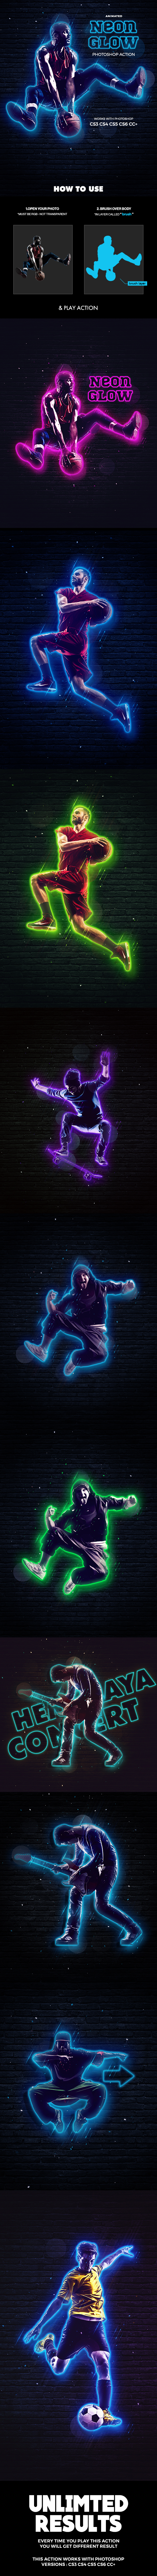 Neon Glow Photoshop Action - Animated - Photo Effects Actions